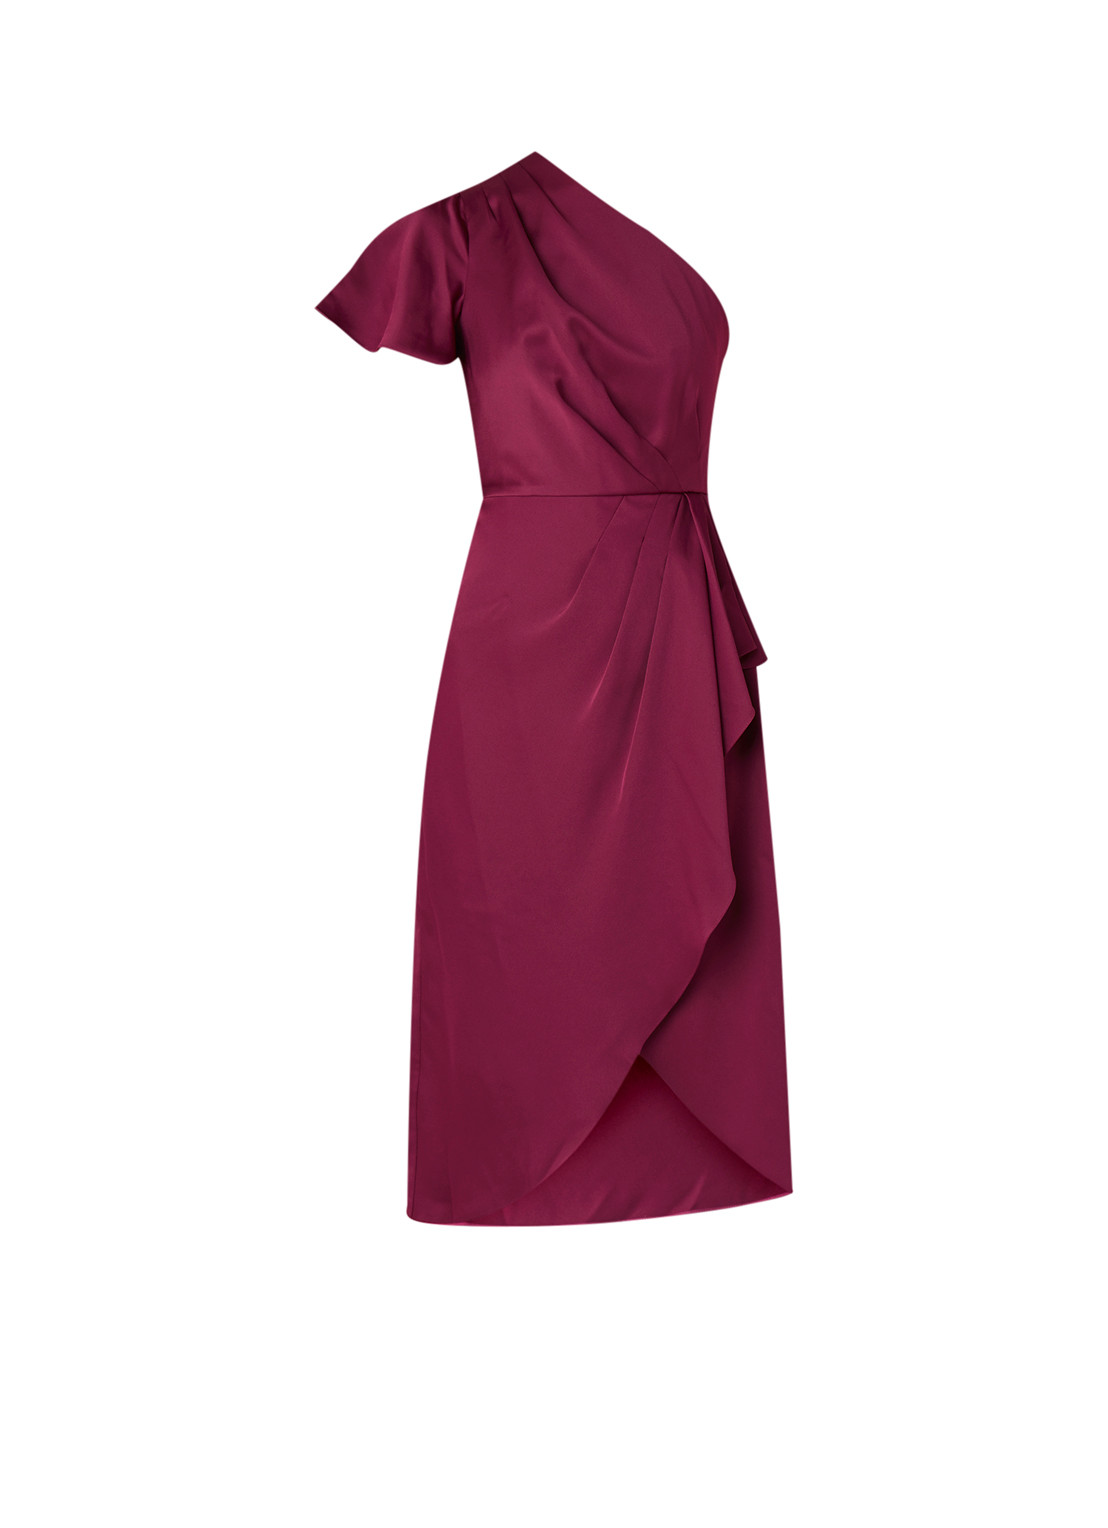 Ted Baker One shoulder midi-jurk van satijn met volant bordeauxrood